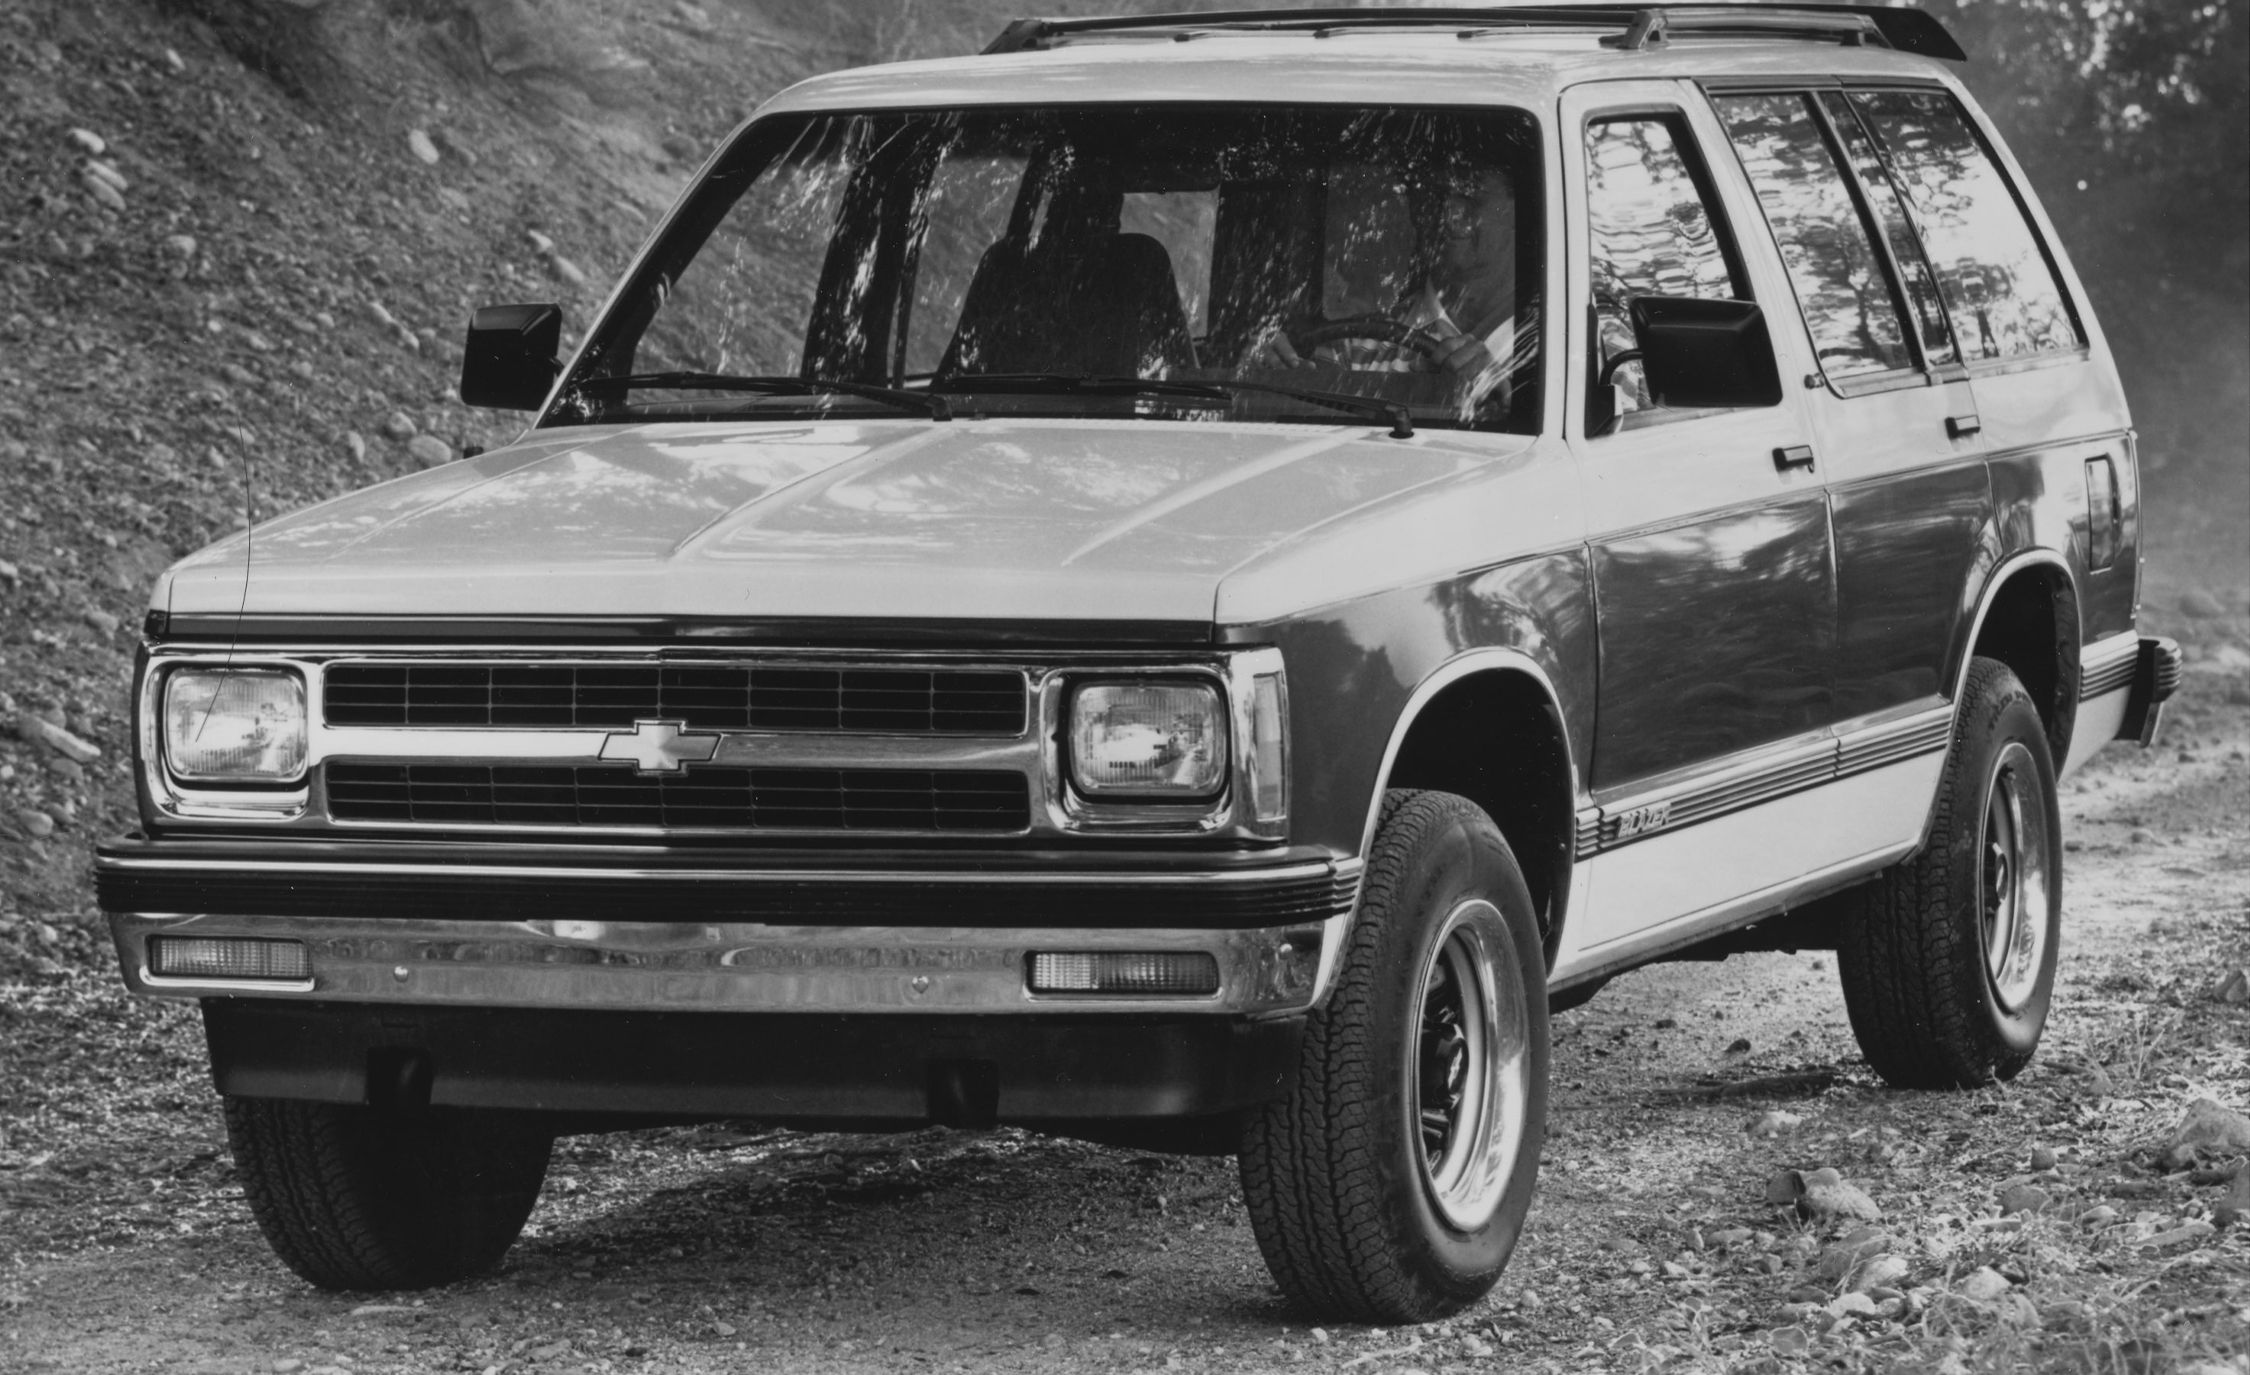 A Visual History of the Chevrolet Blazer | Feature | Car and Driver